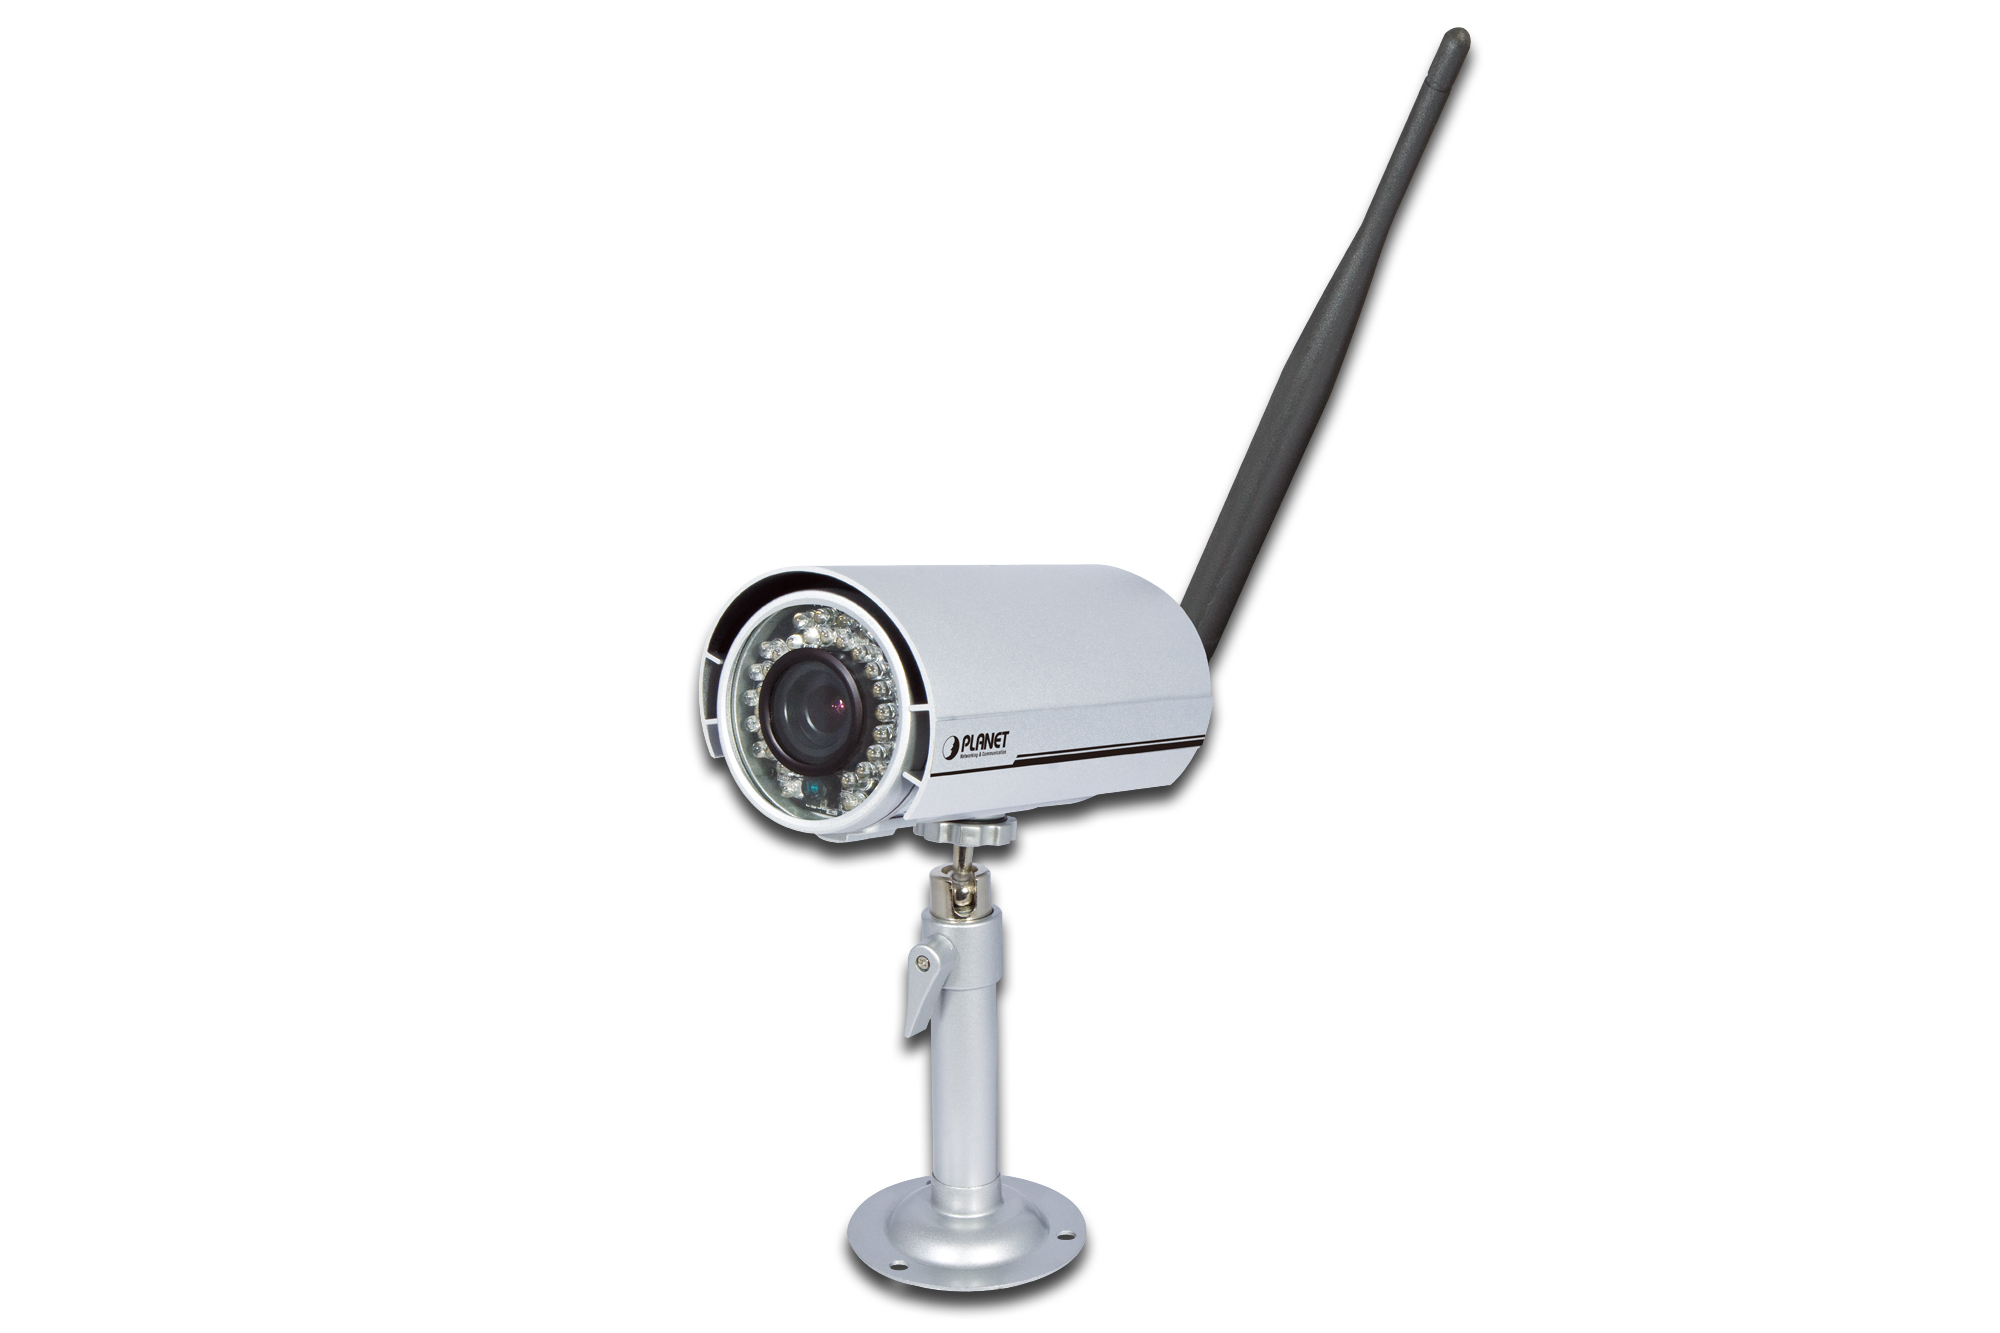 PLANET ICA-HM316W IP CAMERA DESCARGAR DRIVER